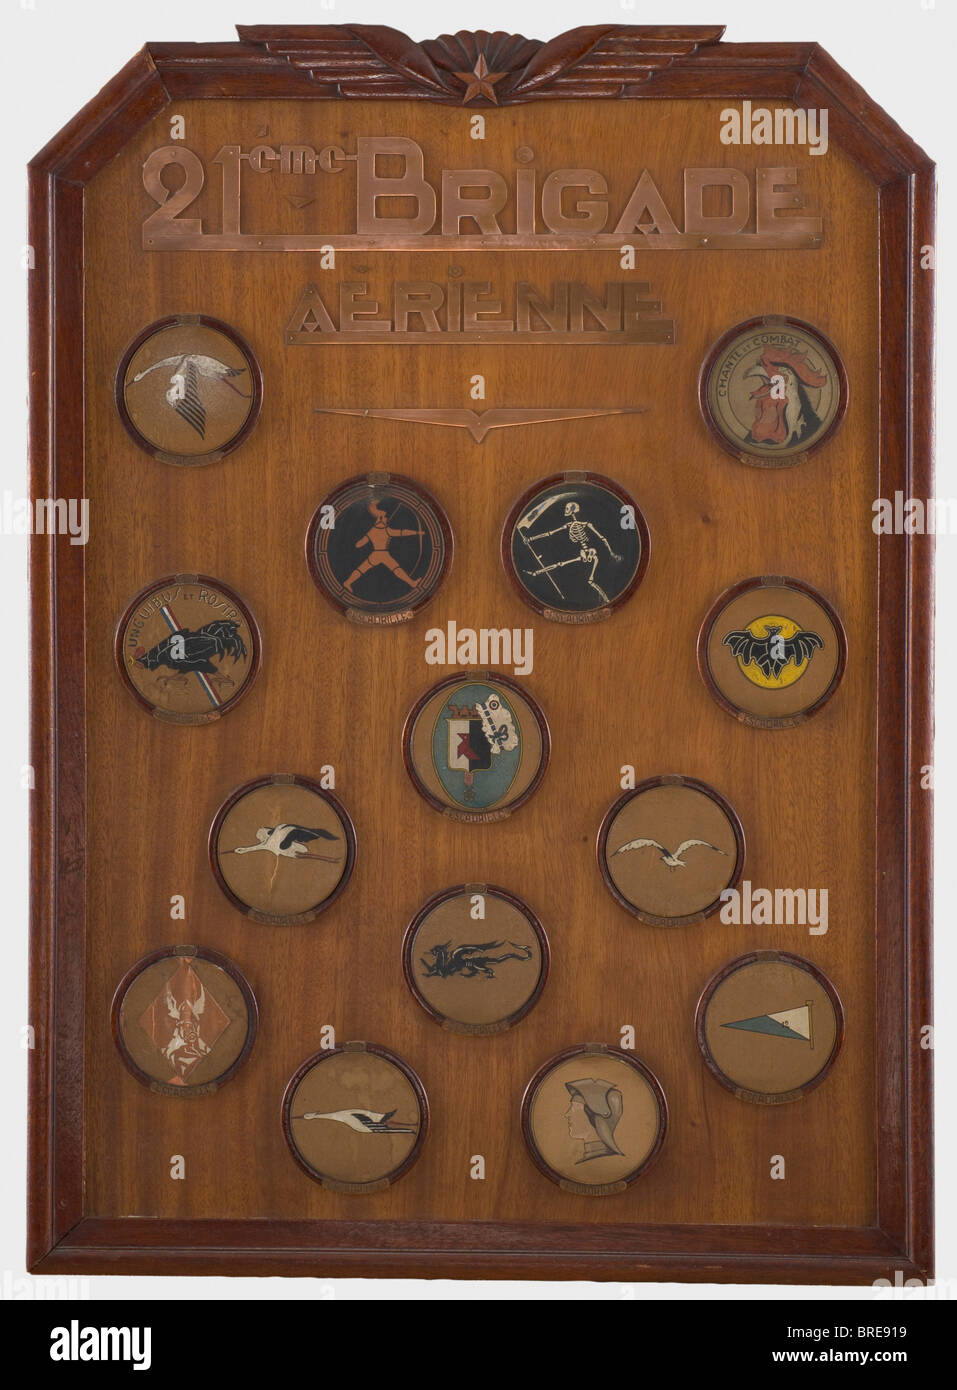 Armand Pinsard (1887 - 1953), a panel with squadron insignias Wooden table, upon which is a saw-cut inscription - Stock Image